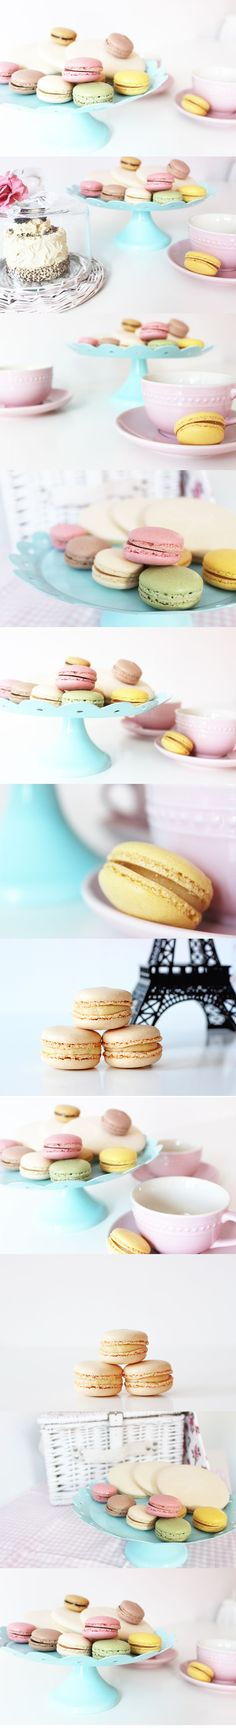 Fun things to do when you're bored:  - Take pictures of macarons!  For more, click the image!  Pastel macarons, macaron, cute, happy, french, cookies, photography